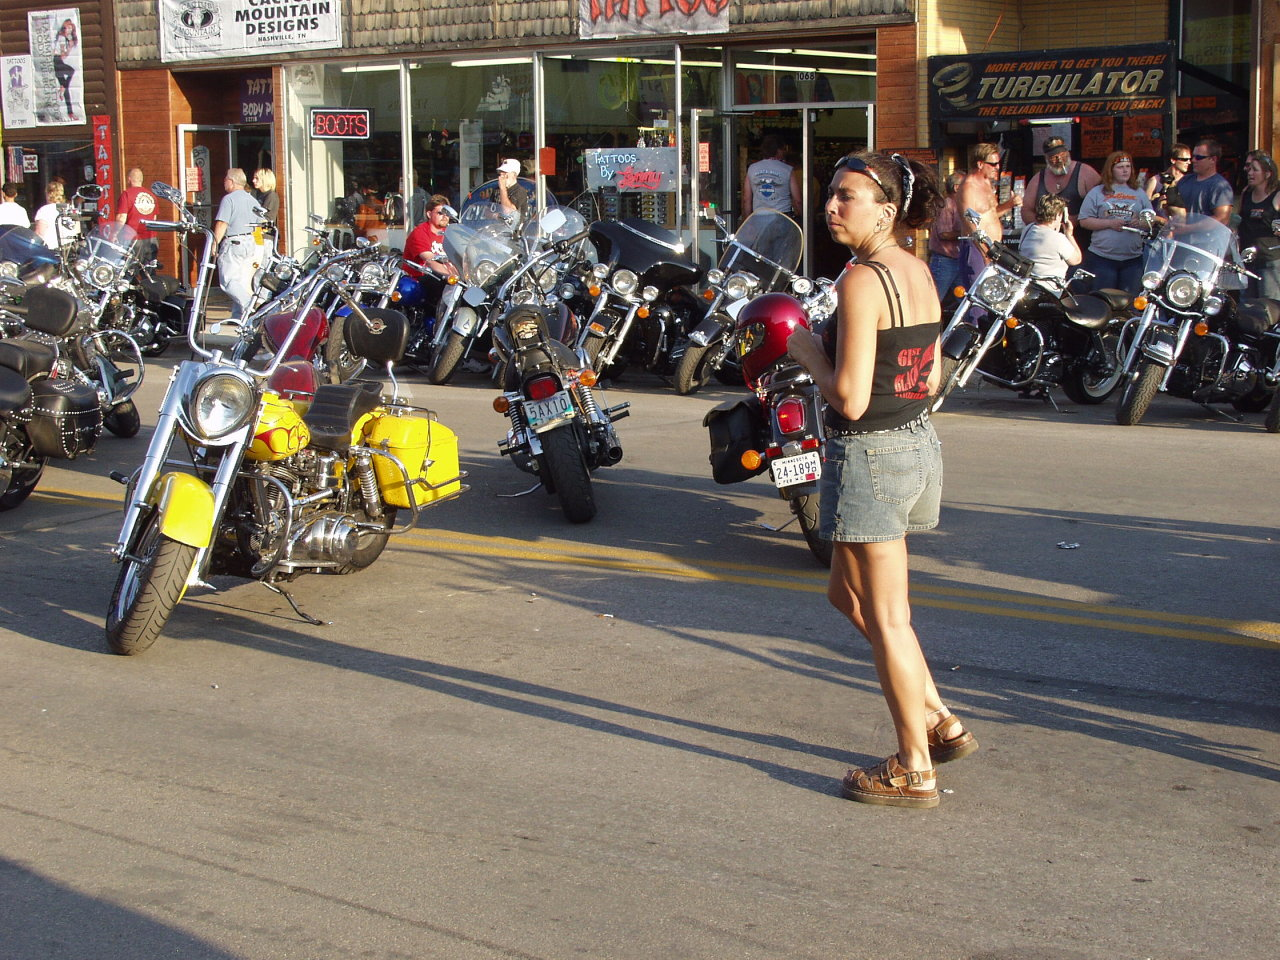 Woman at bike rally